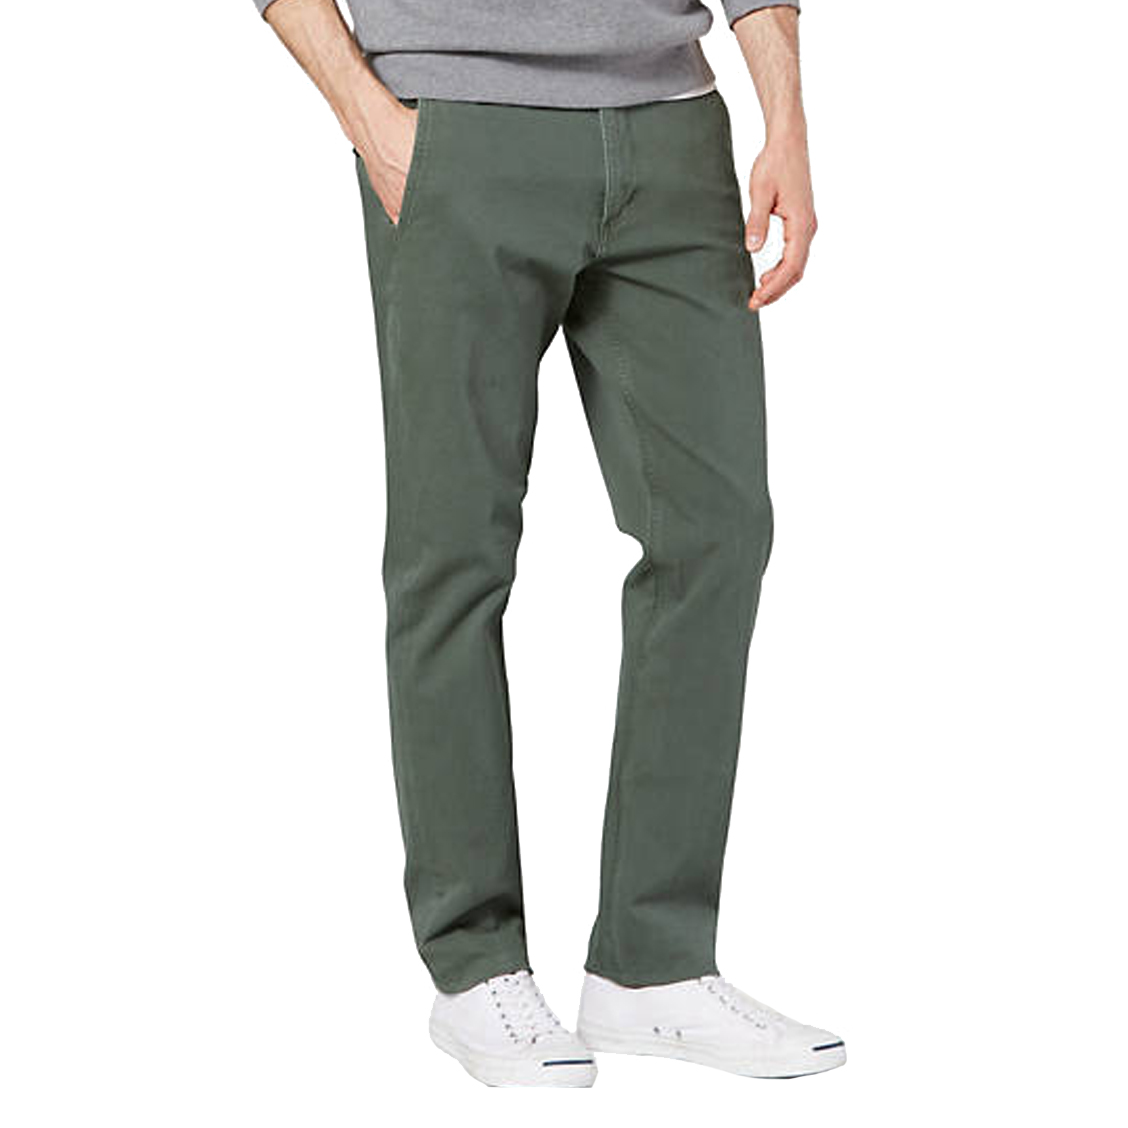 Pantalon chino  smart 360 flex alpha en coton stretch vert kaki